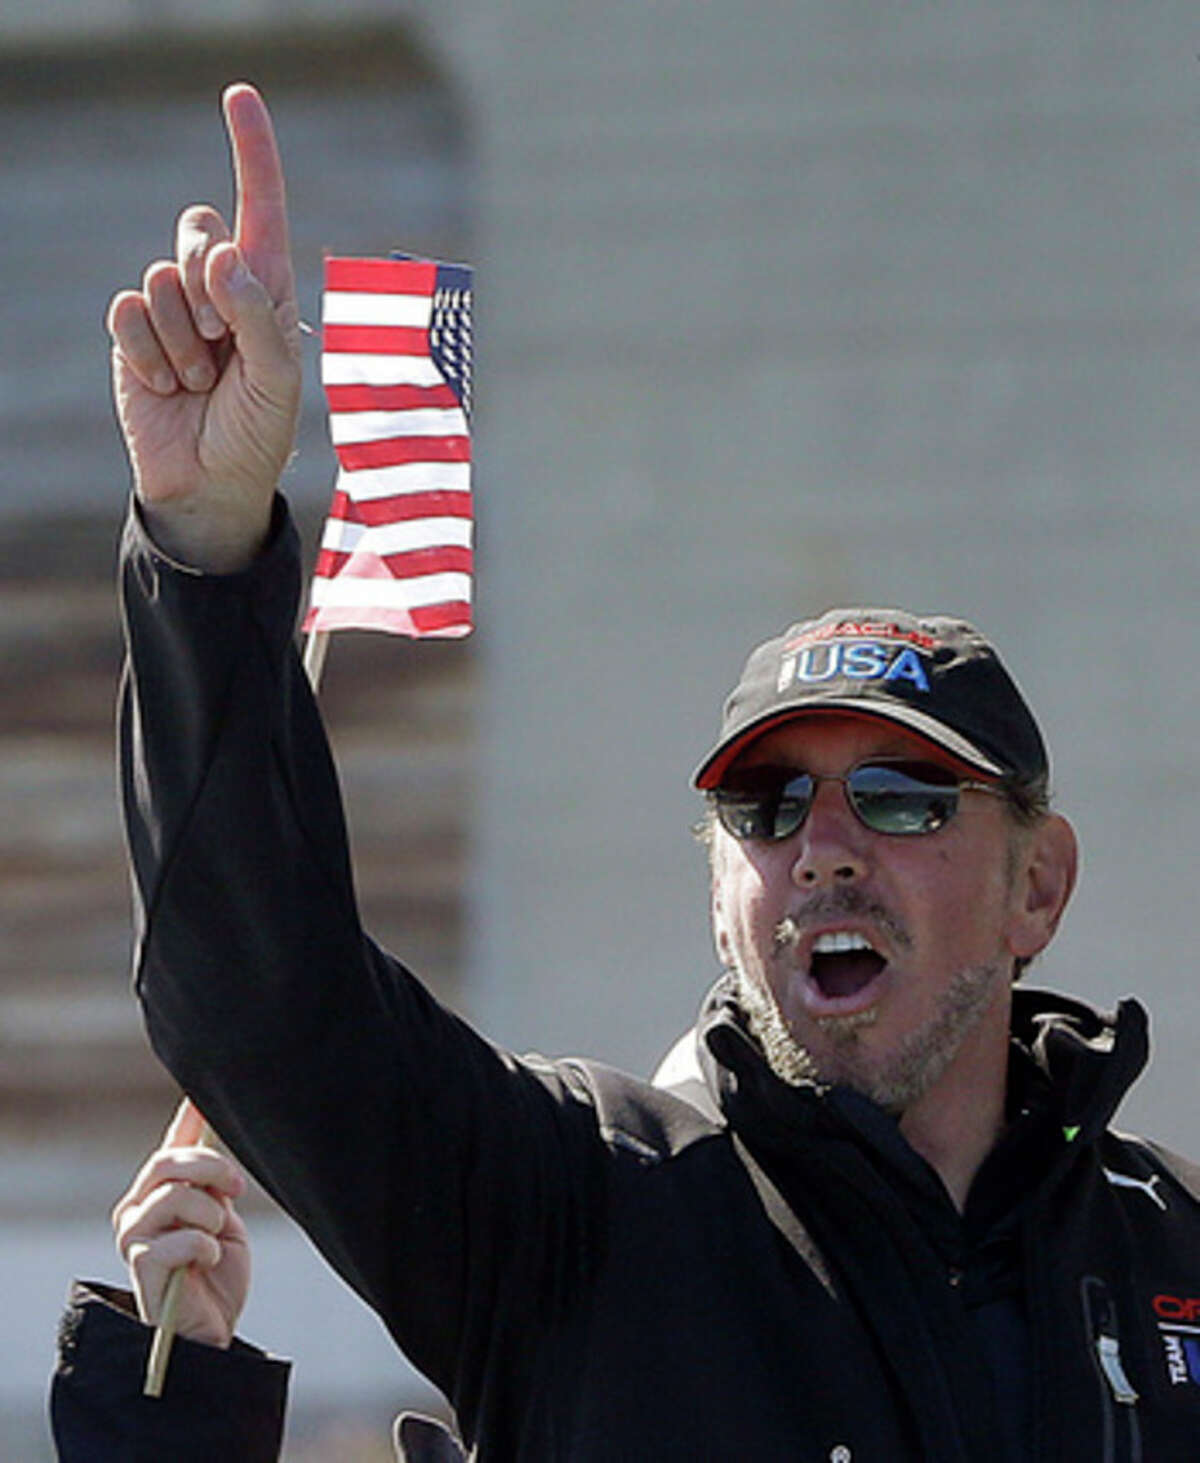 Oracle CEO Larry Ellison, gestures after Oracle Team USA won the 18th race of the America's Cup sailing event against Emirates Team New Zealand Tuesday, Sept. 24, 2013, in San Francisco. Oracle Team USA won races 17 and 18 to pull even with Emirates Team New Zealand. (AP Photo/Ben Margot)